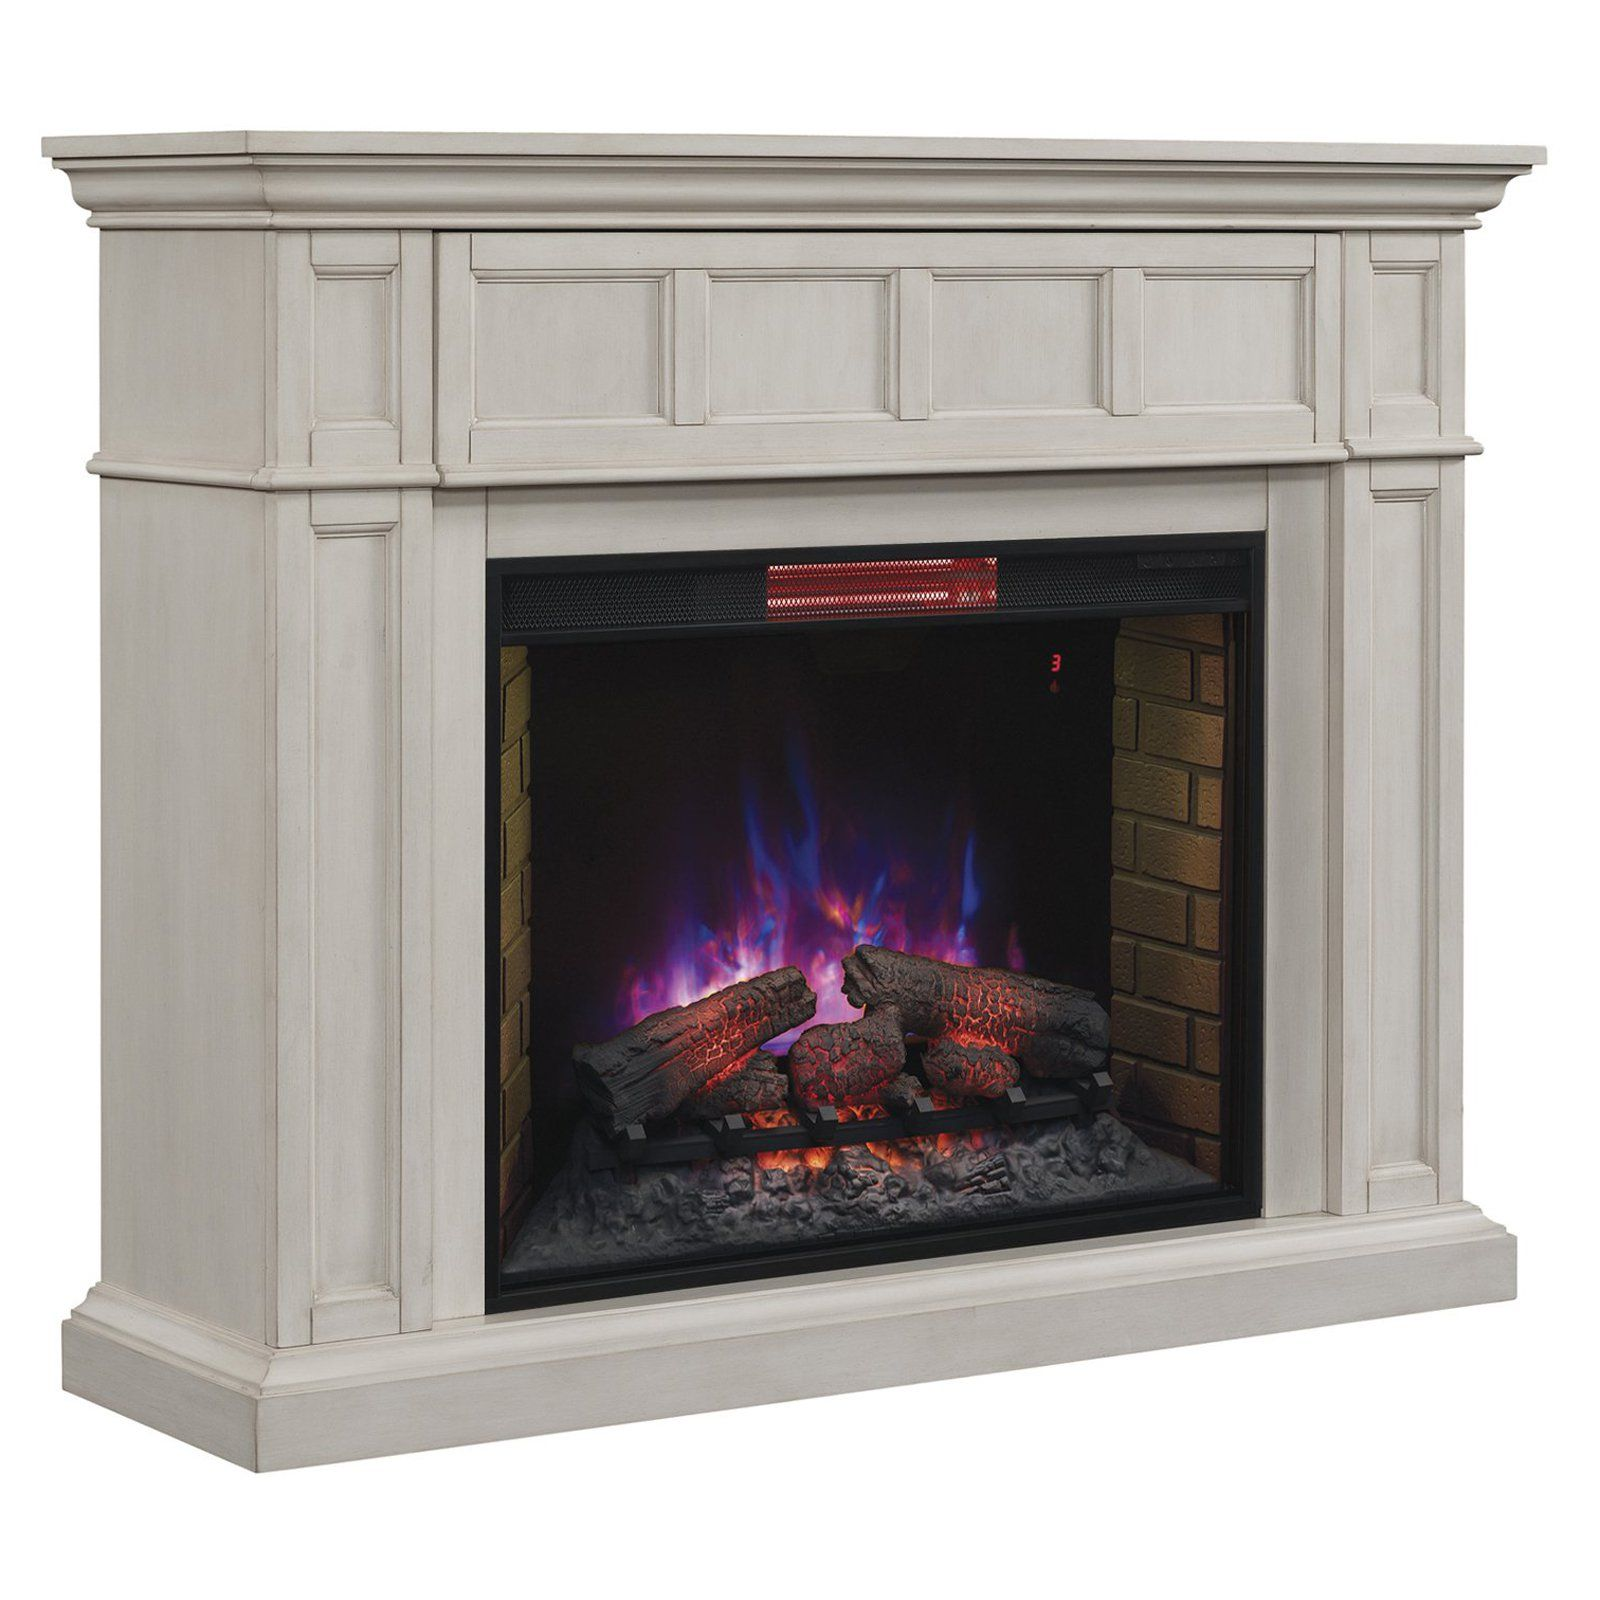 Bedroom Fireplace Heater Chimney Free Estate Wall Mantel Electric Fireplace With